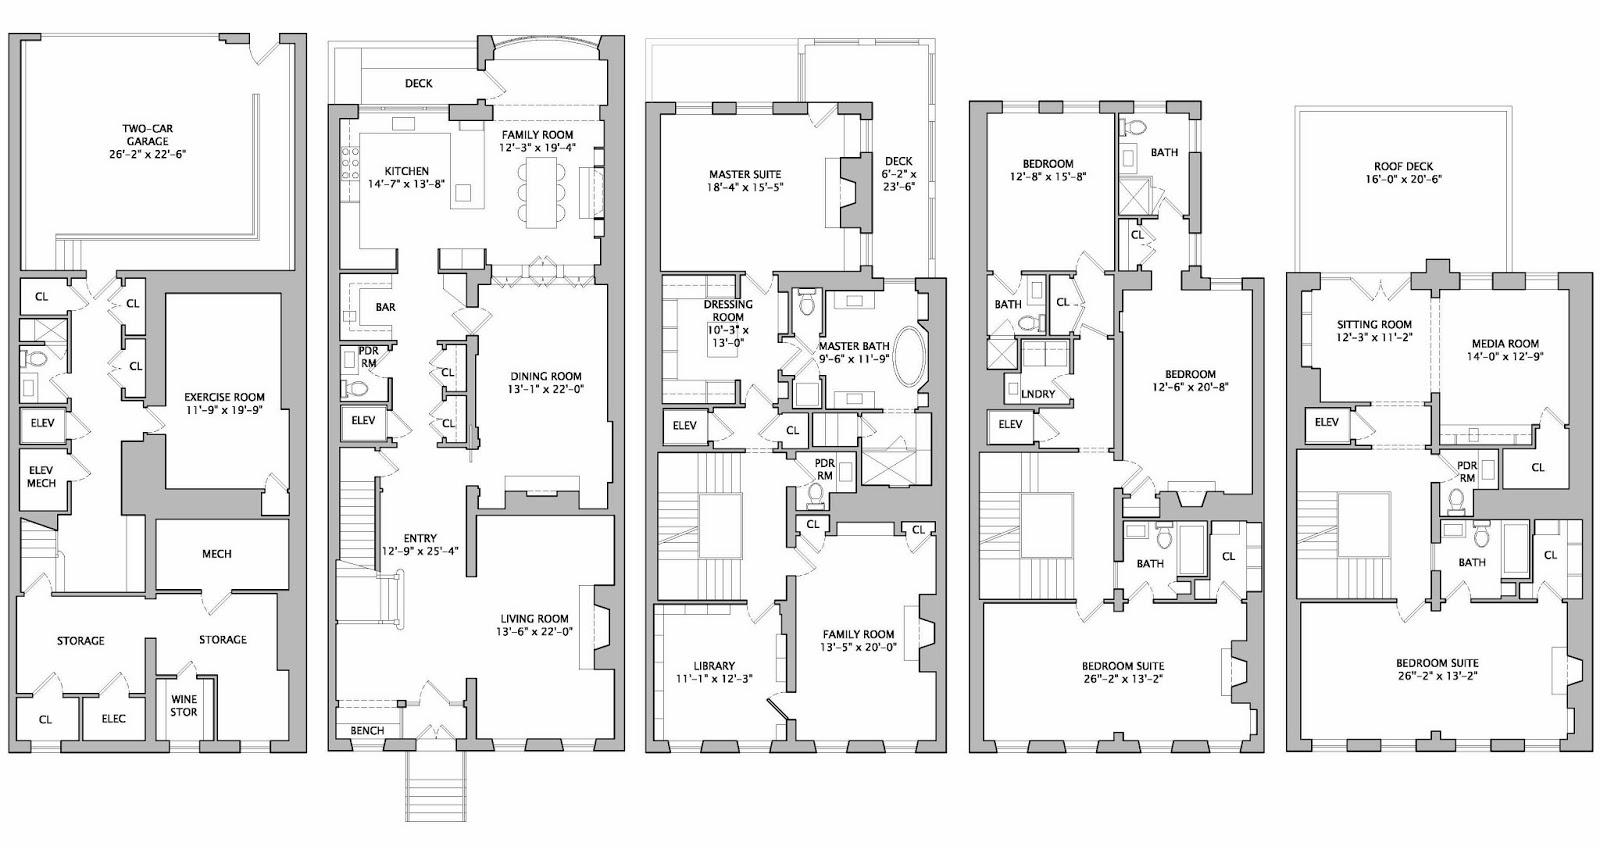 Baltimore Row House Floor Plans additionally House Plans Nashville Tn additionally Brownstone Floor Plans besides 4 Bedroom Apartment House likewise arcbazar. on historic townhouse plans